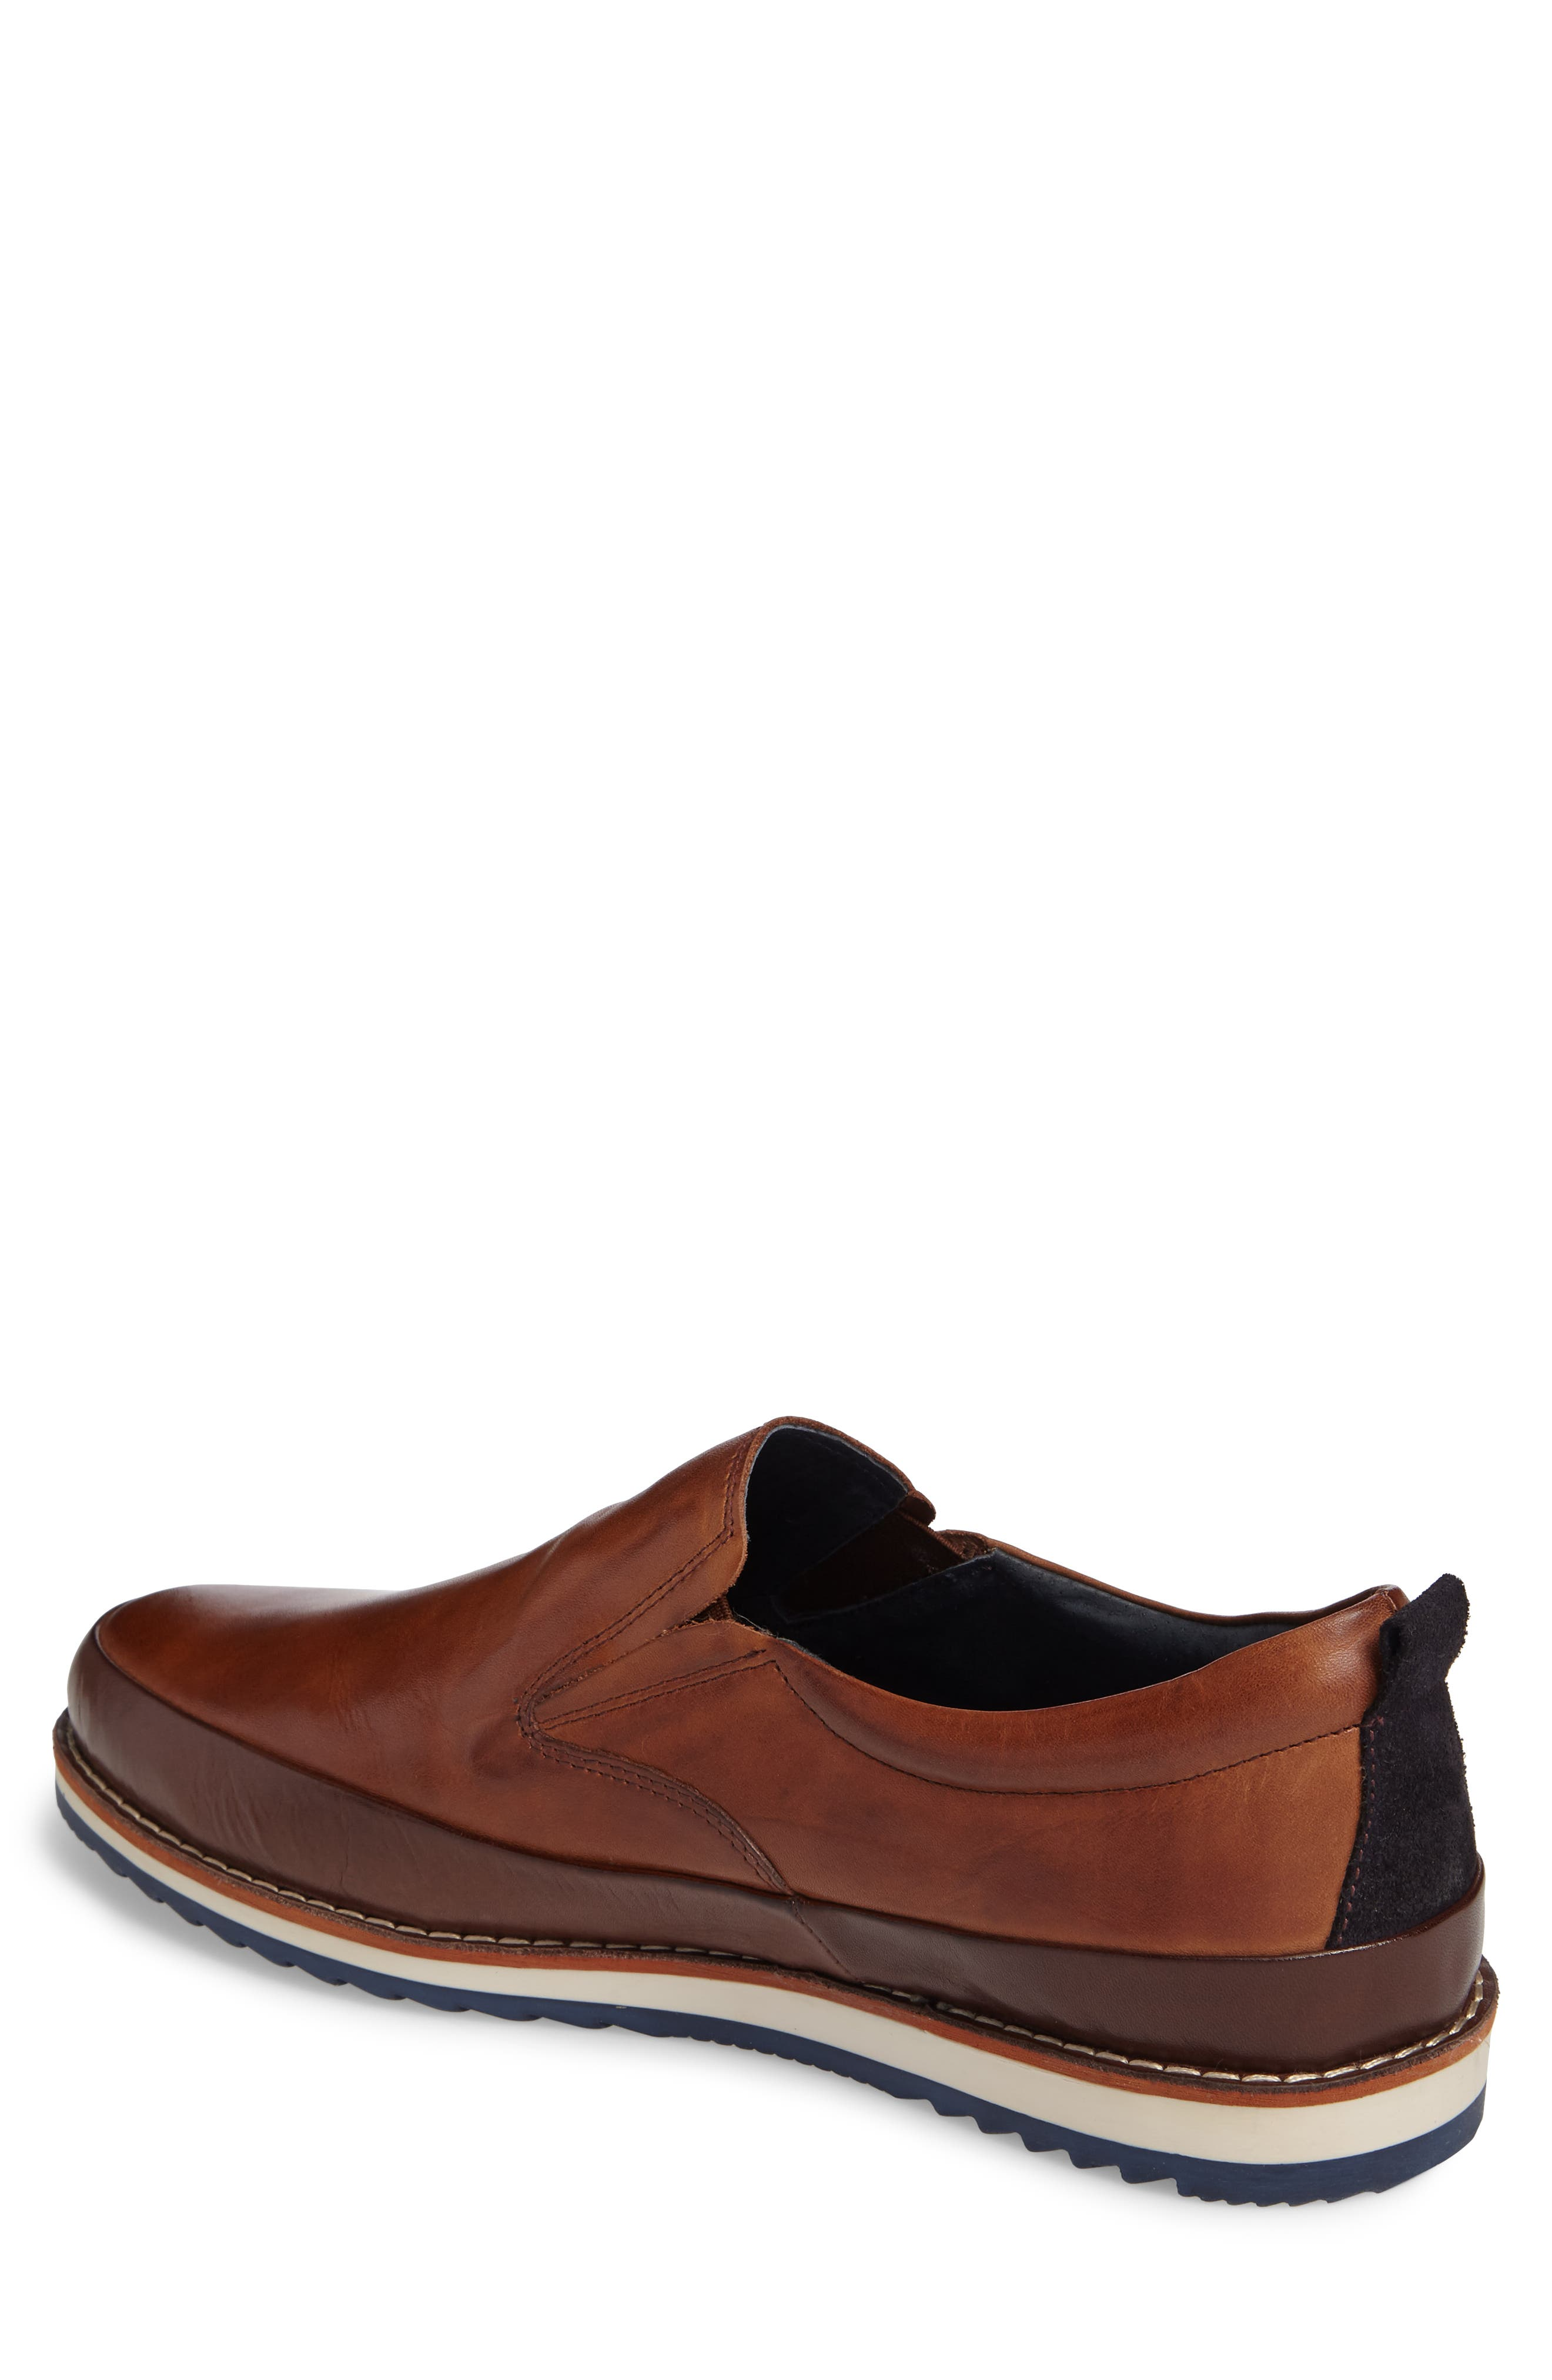 Biarritz Slip-On,                             Alternate thumbnail 2, color,                             Brown Leather